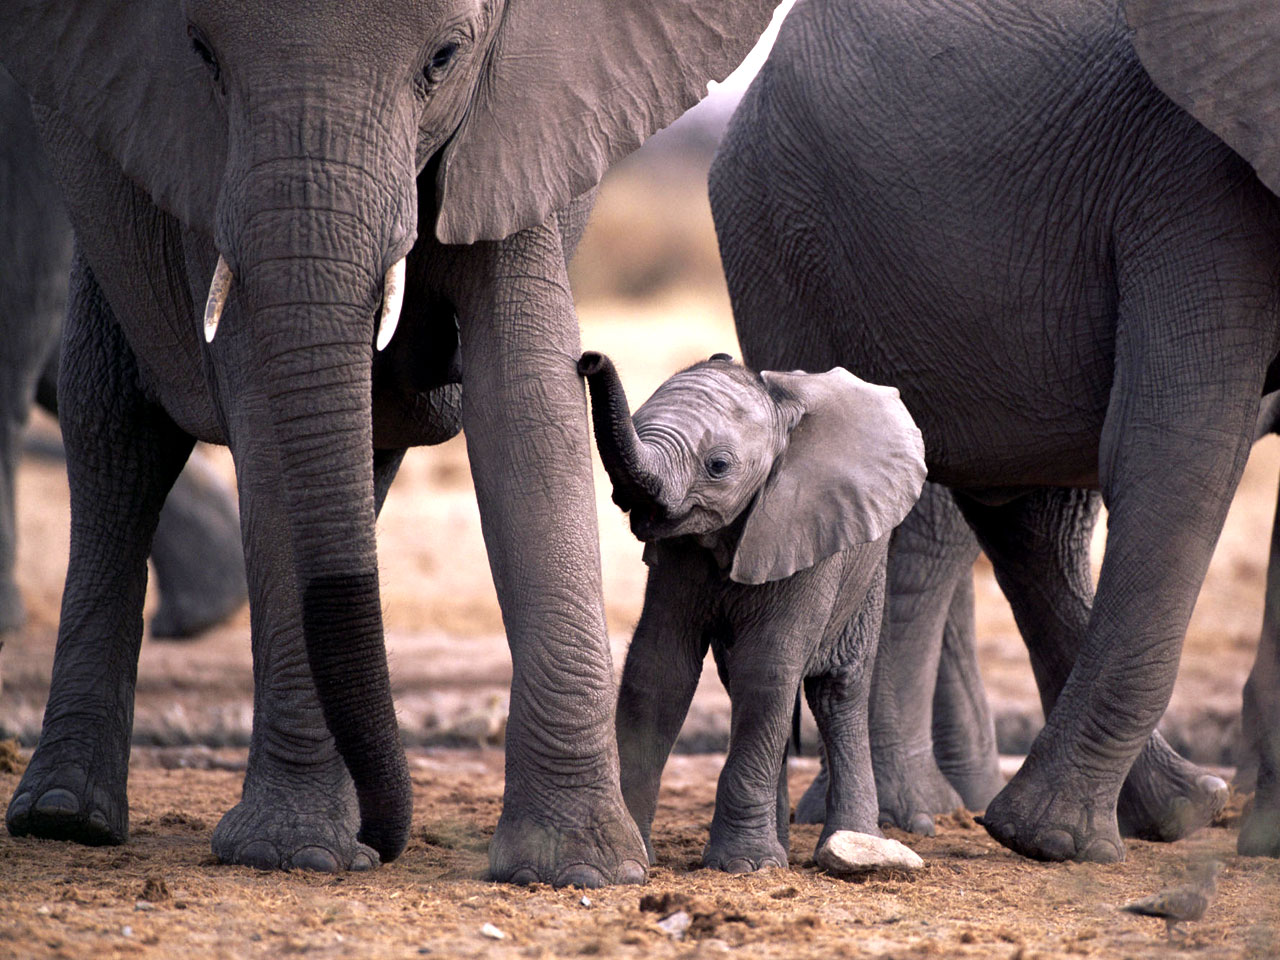 Animal Jungle And N Elephants In Their Natural Habitat Elephant 296467 Wallpaper wallpaper